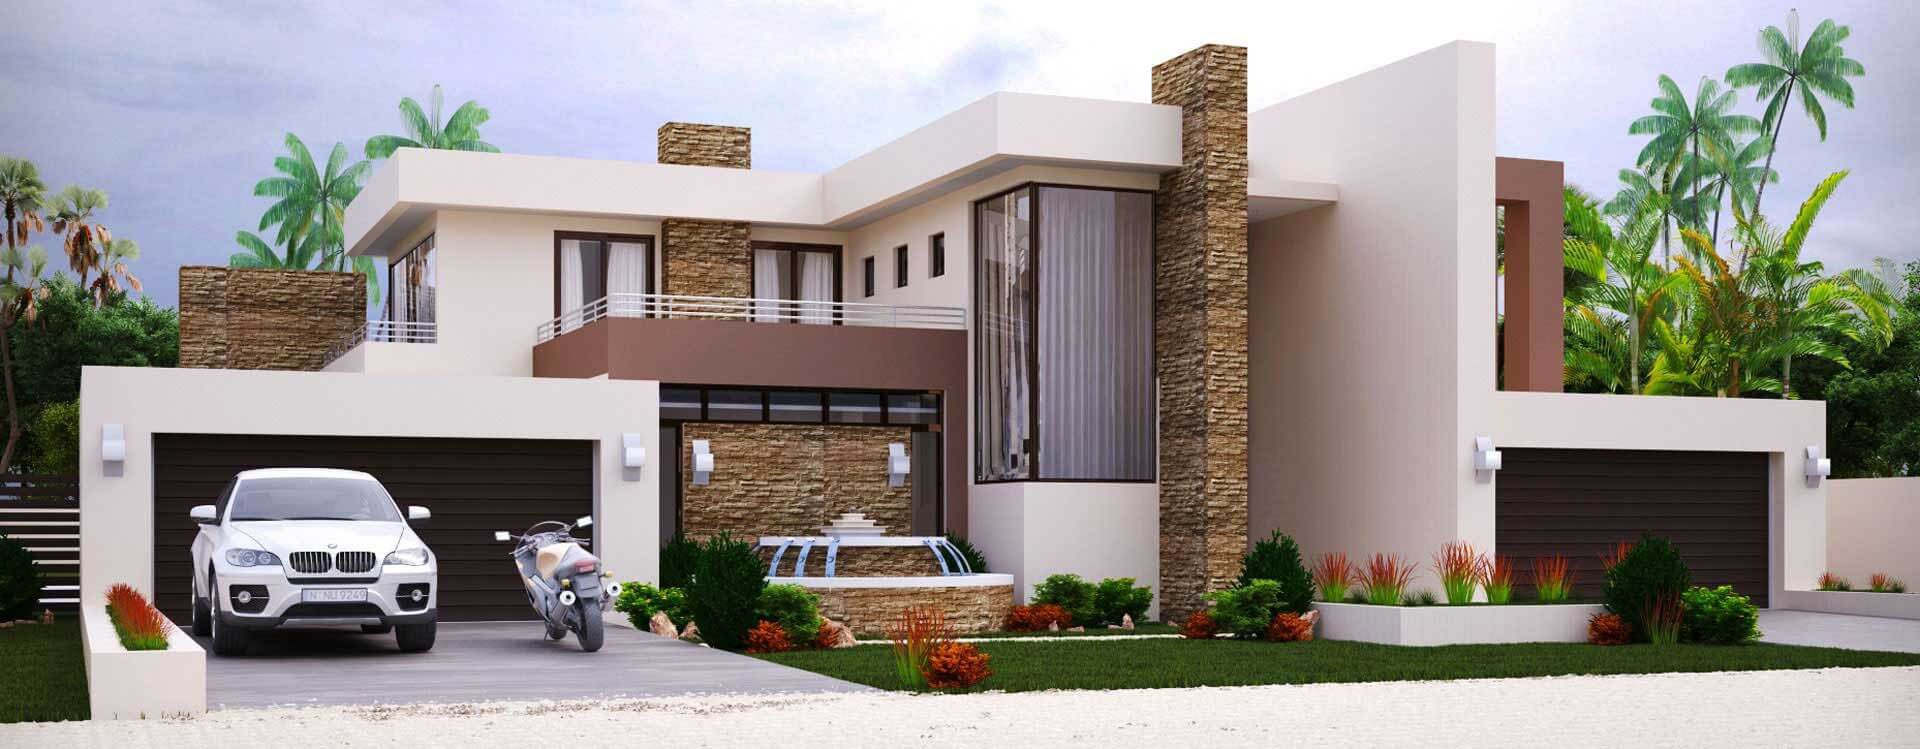 4 bedroom house plan m497d